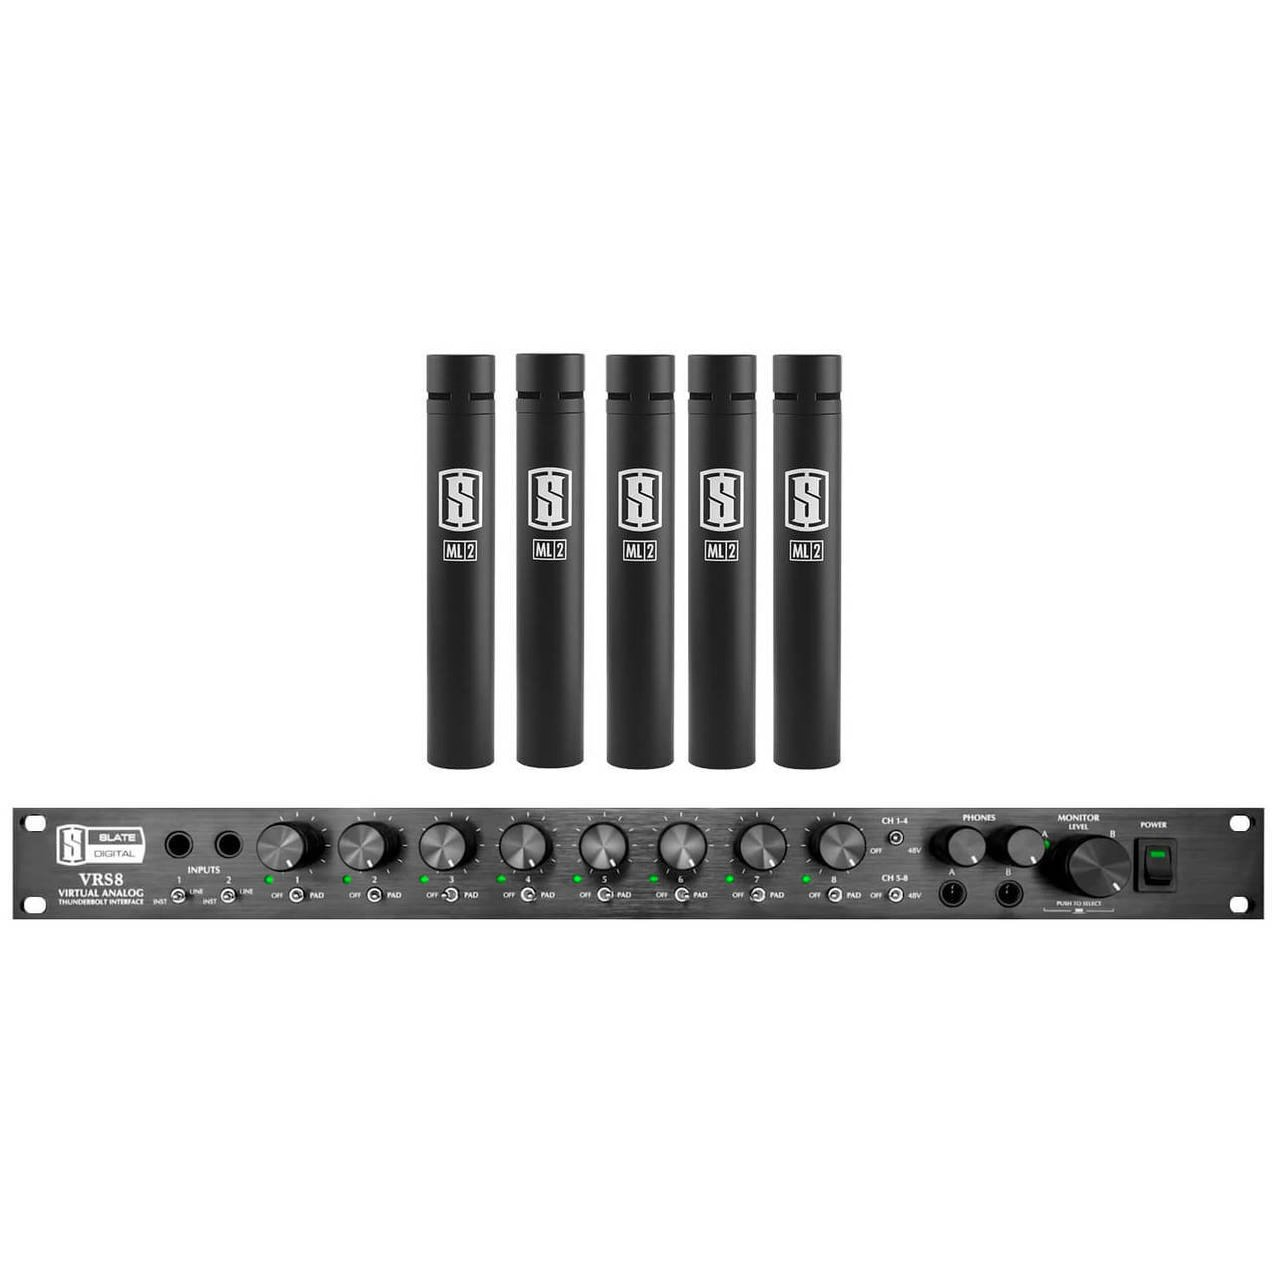 Slate Digital VRS8 Audio Interface + 5-pack of ML-2 Modelling Microphones